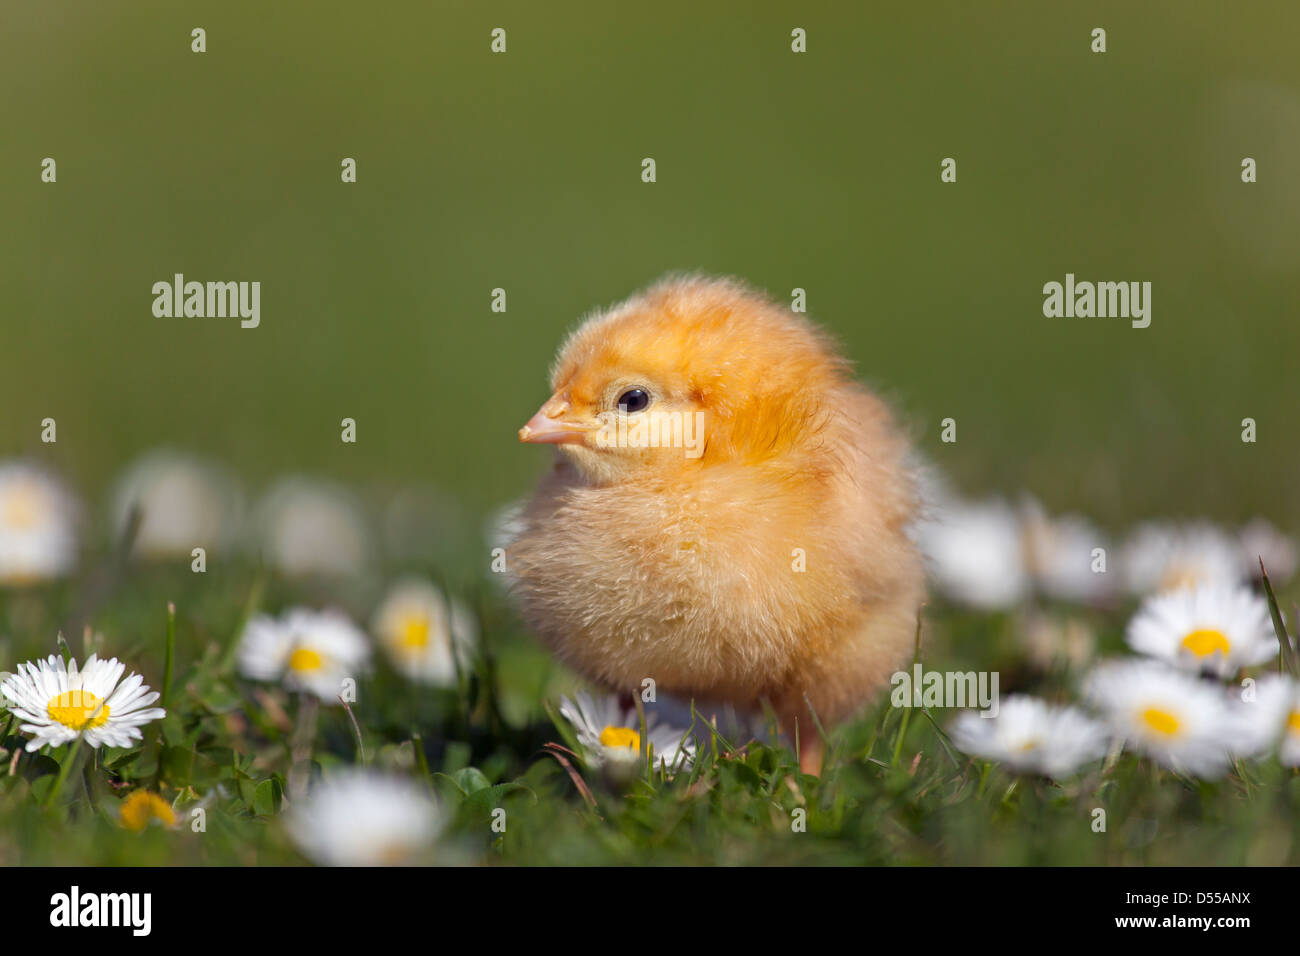 Day old chick newly hatched in spring in daises - Stock Image